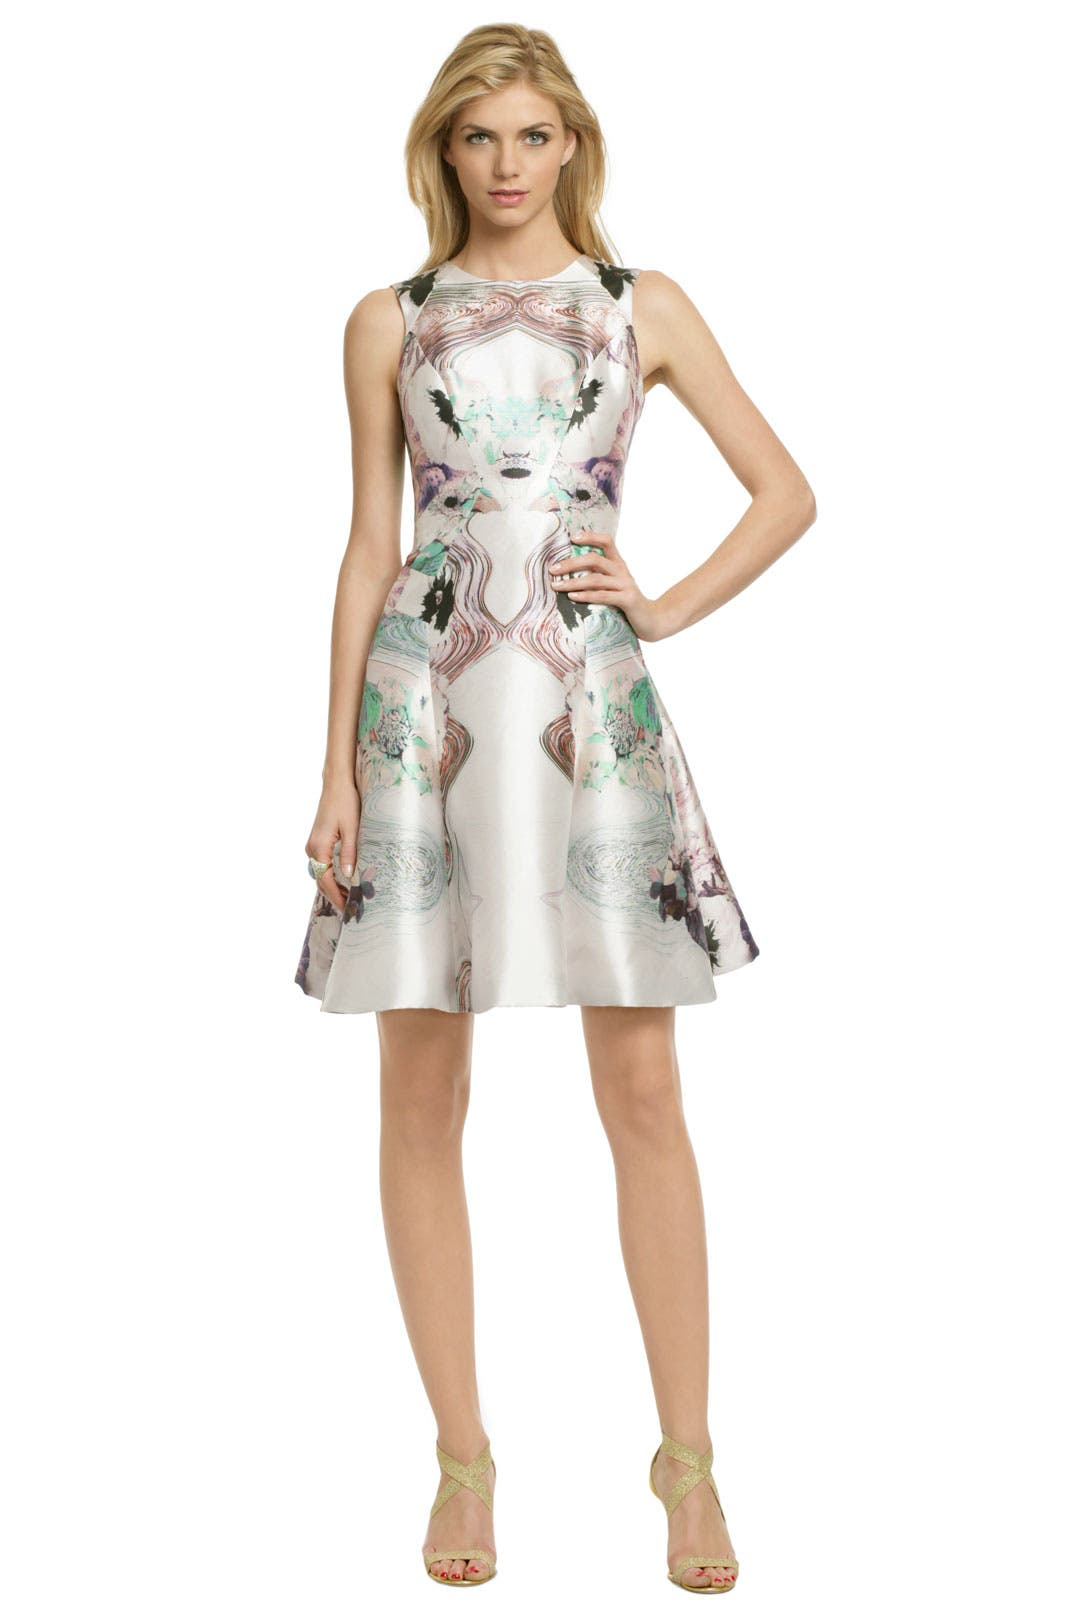 Pastel Floral Fantasy Dress by Prabal Gurung